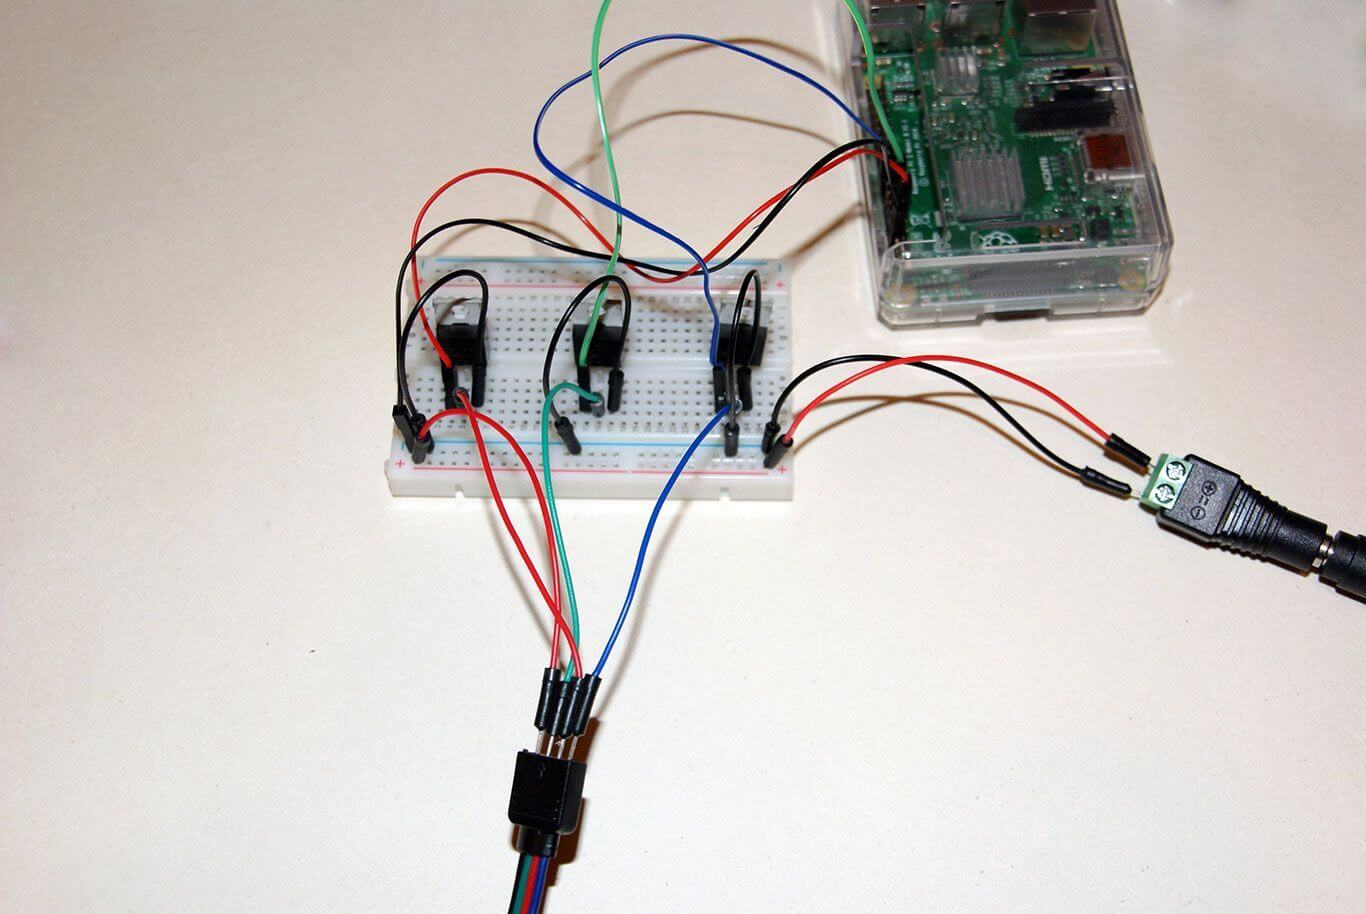 Connecting WS2813 with Raspberry PI